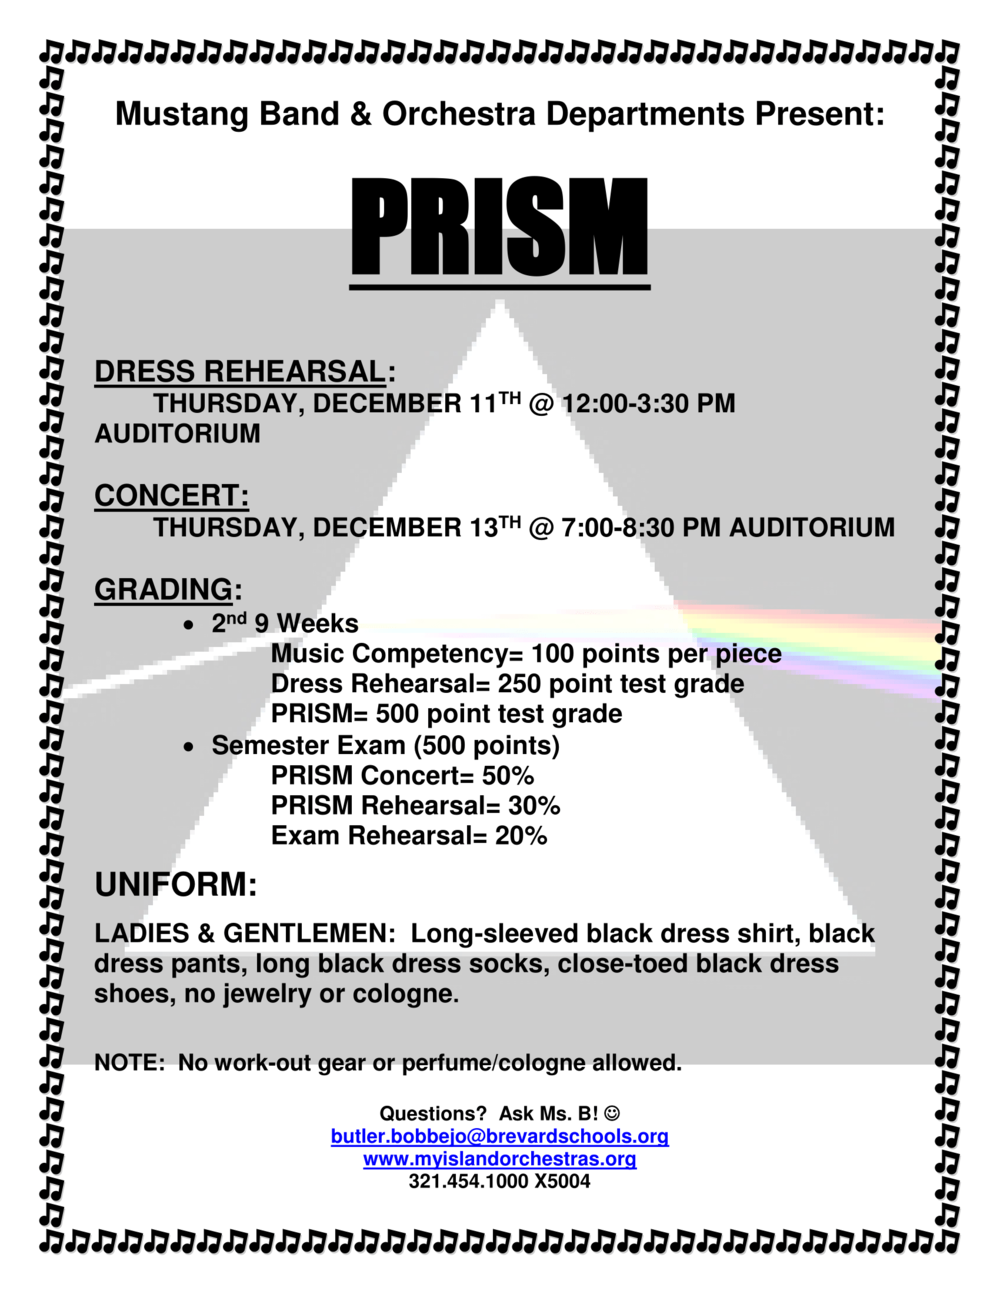 MIHS PRISM CONCERT - A musical spectrum of sound. Thursday, December 13th at 7:00 PM MIHS auditorium. Admission is free. Donations are accepted.